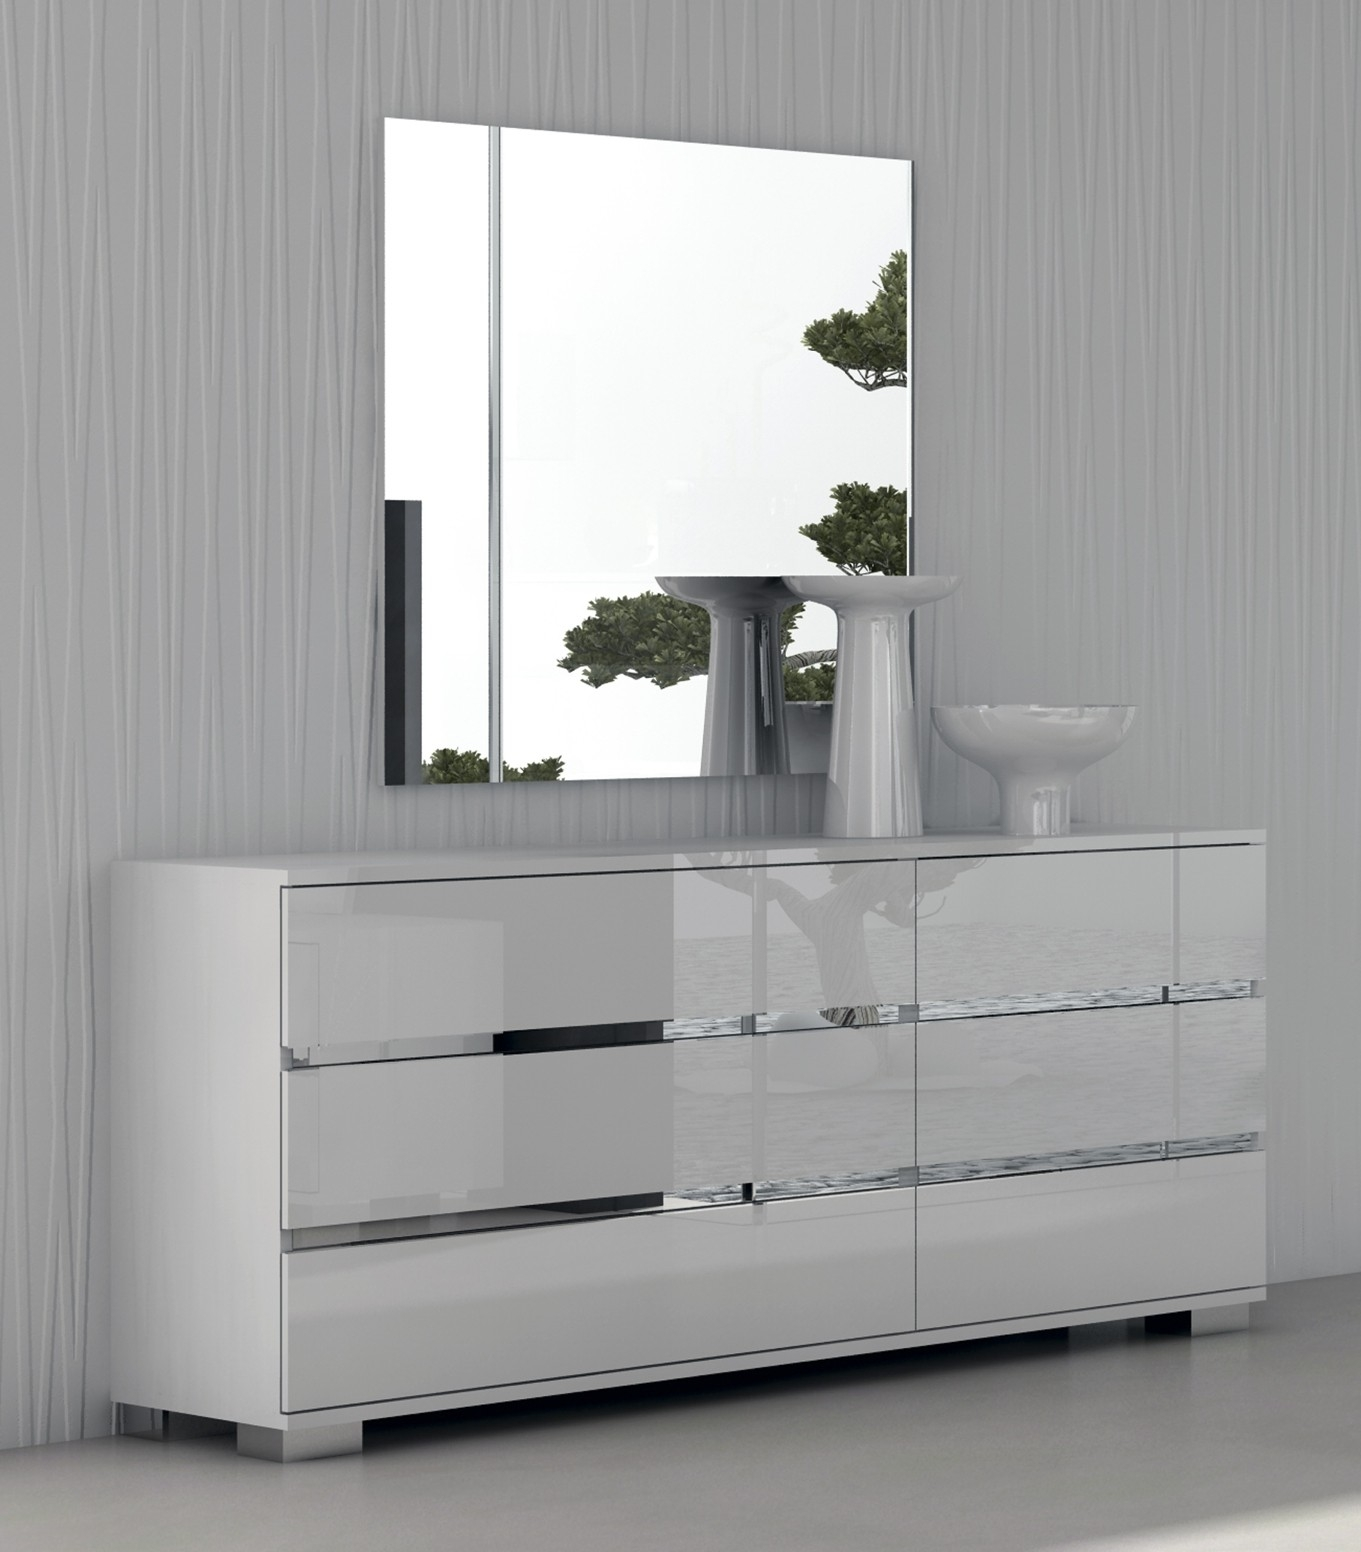 White Contemporary Dresser With Regard To Contemporary White Mirror (Image 14 of 15)